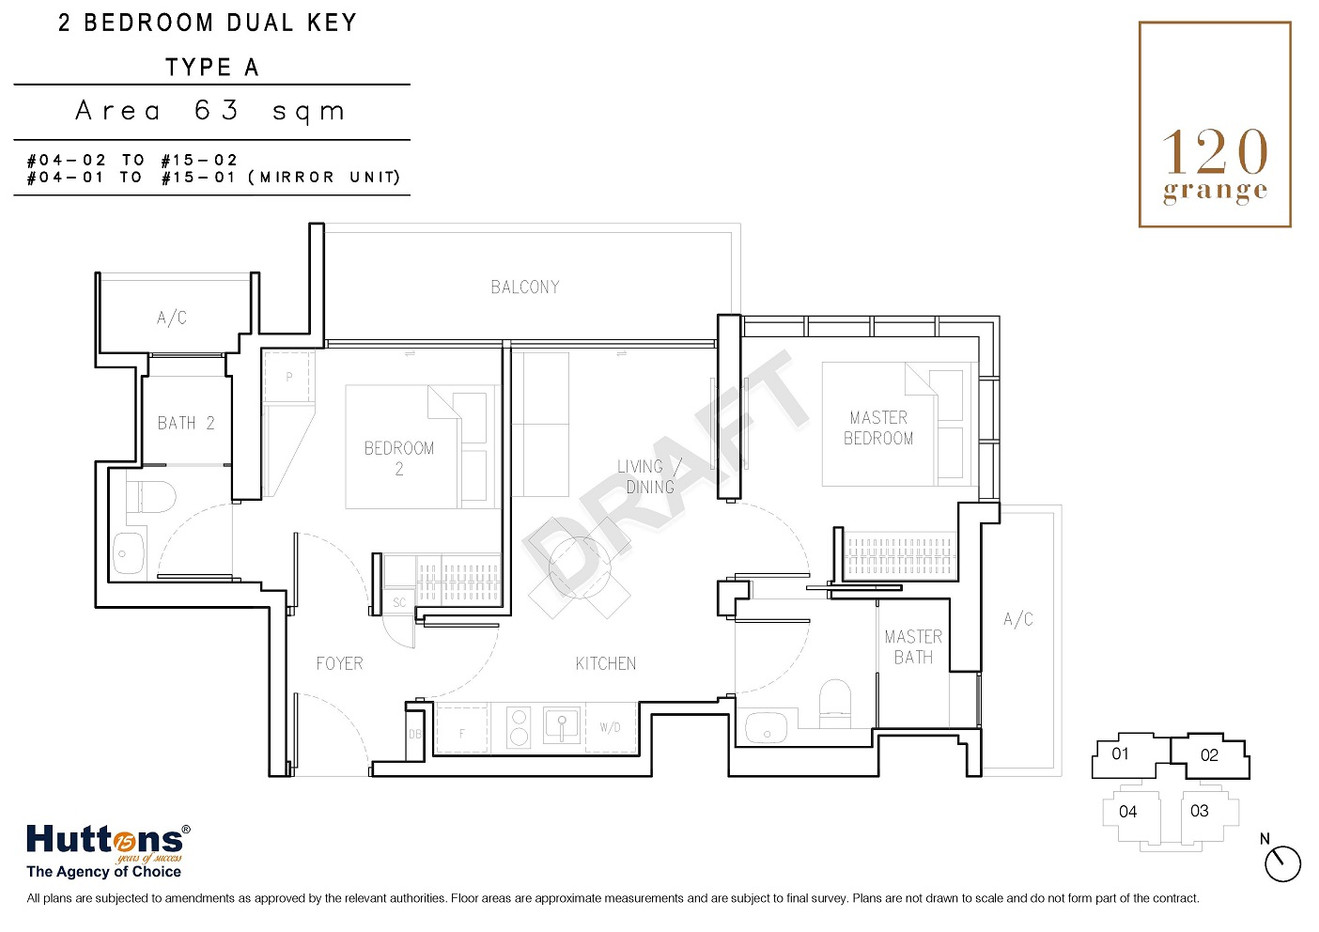 2 Bedrooms Dual-key Type A